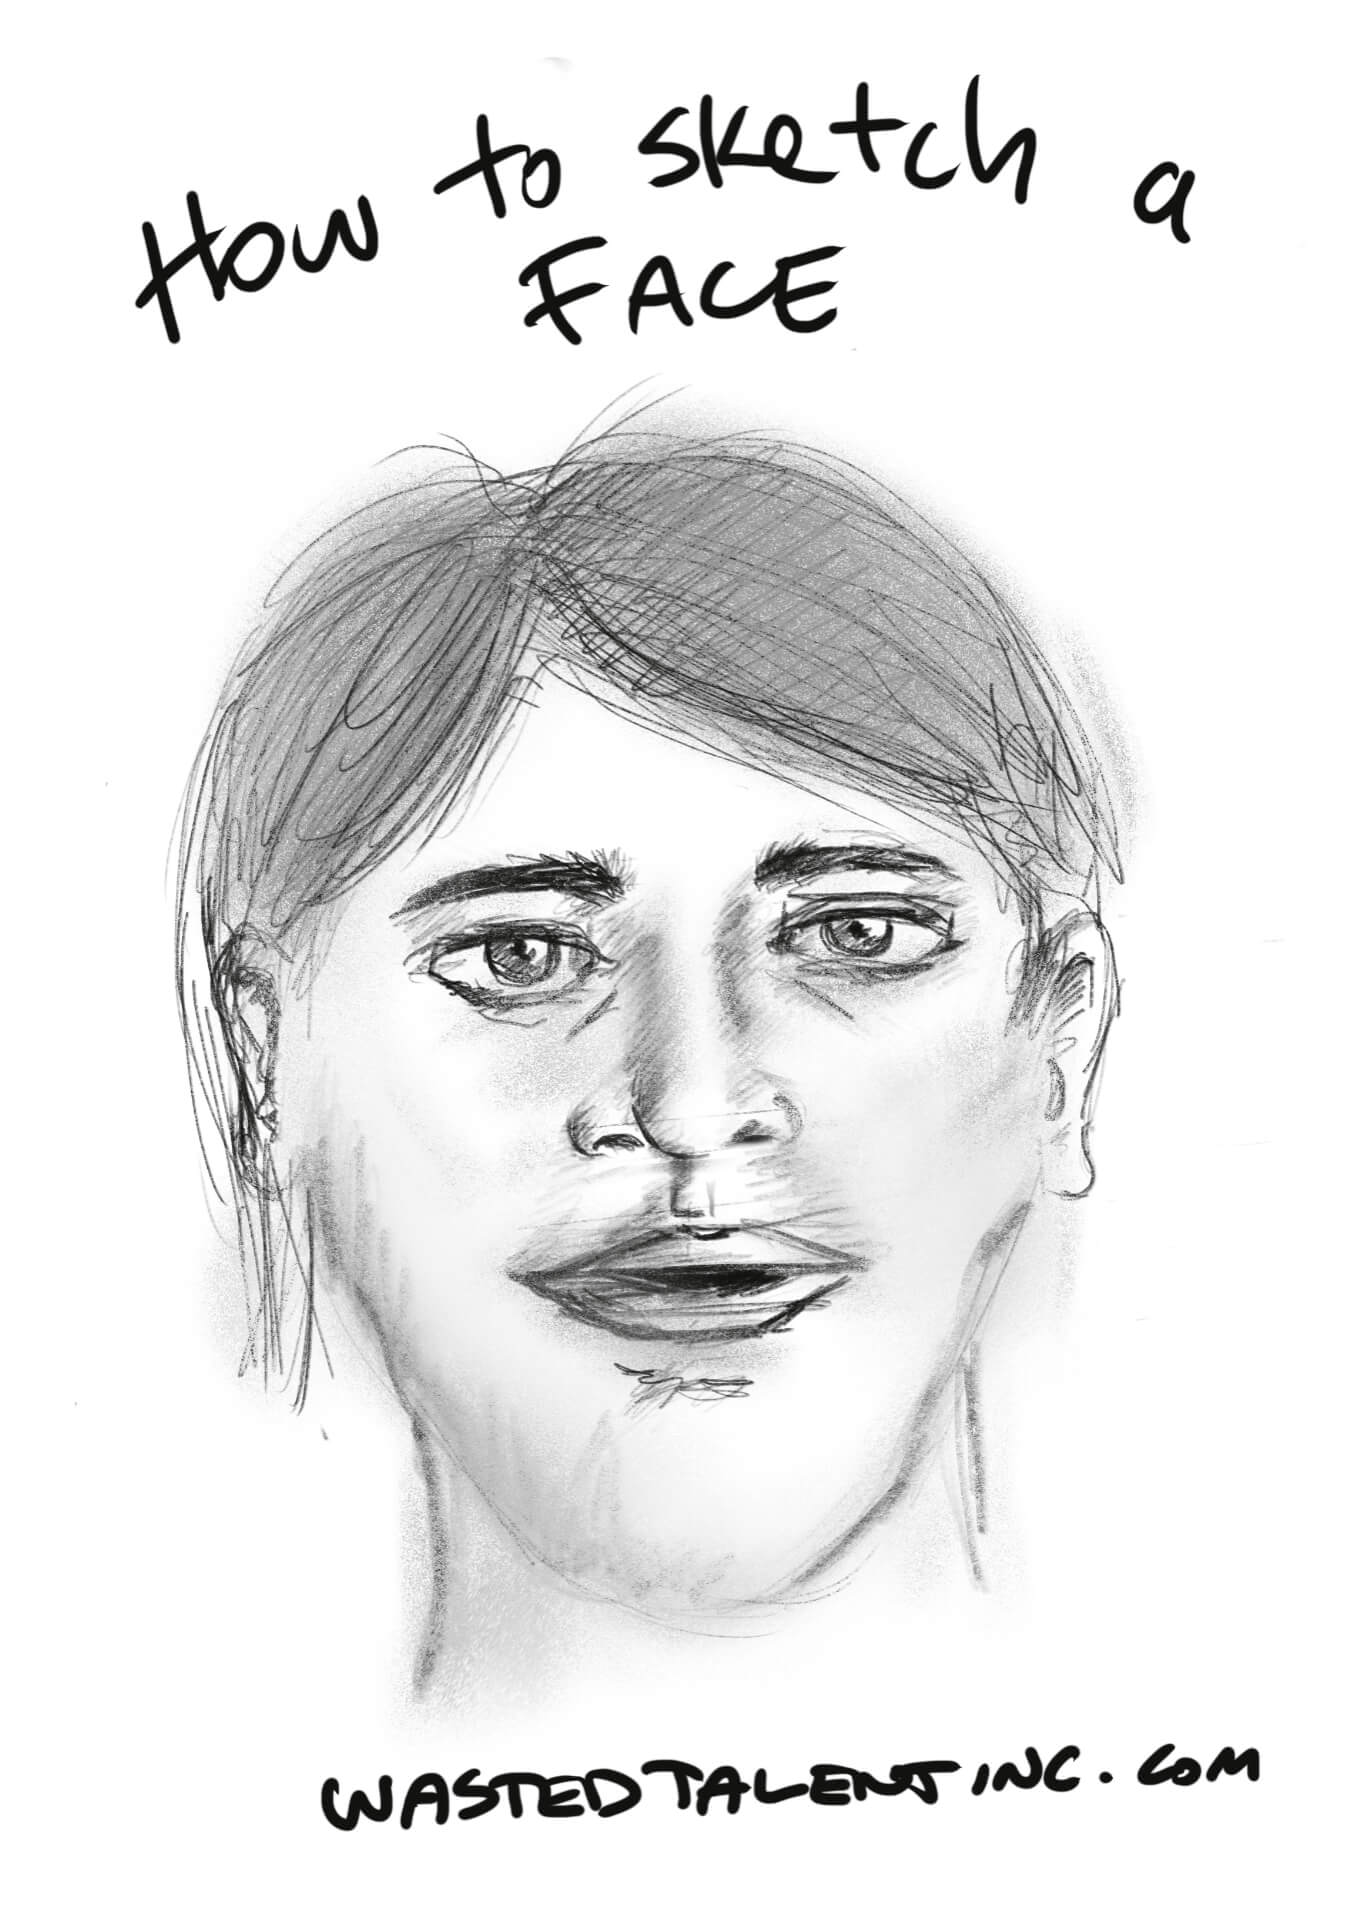 How to Sketch a Face - Final